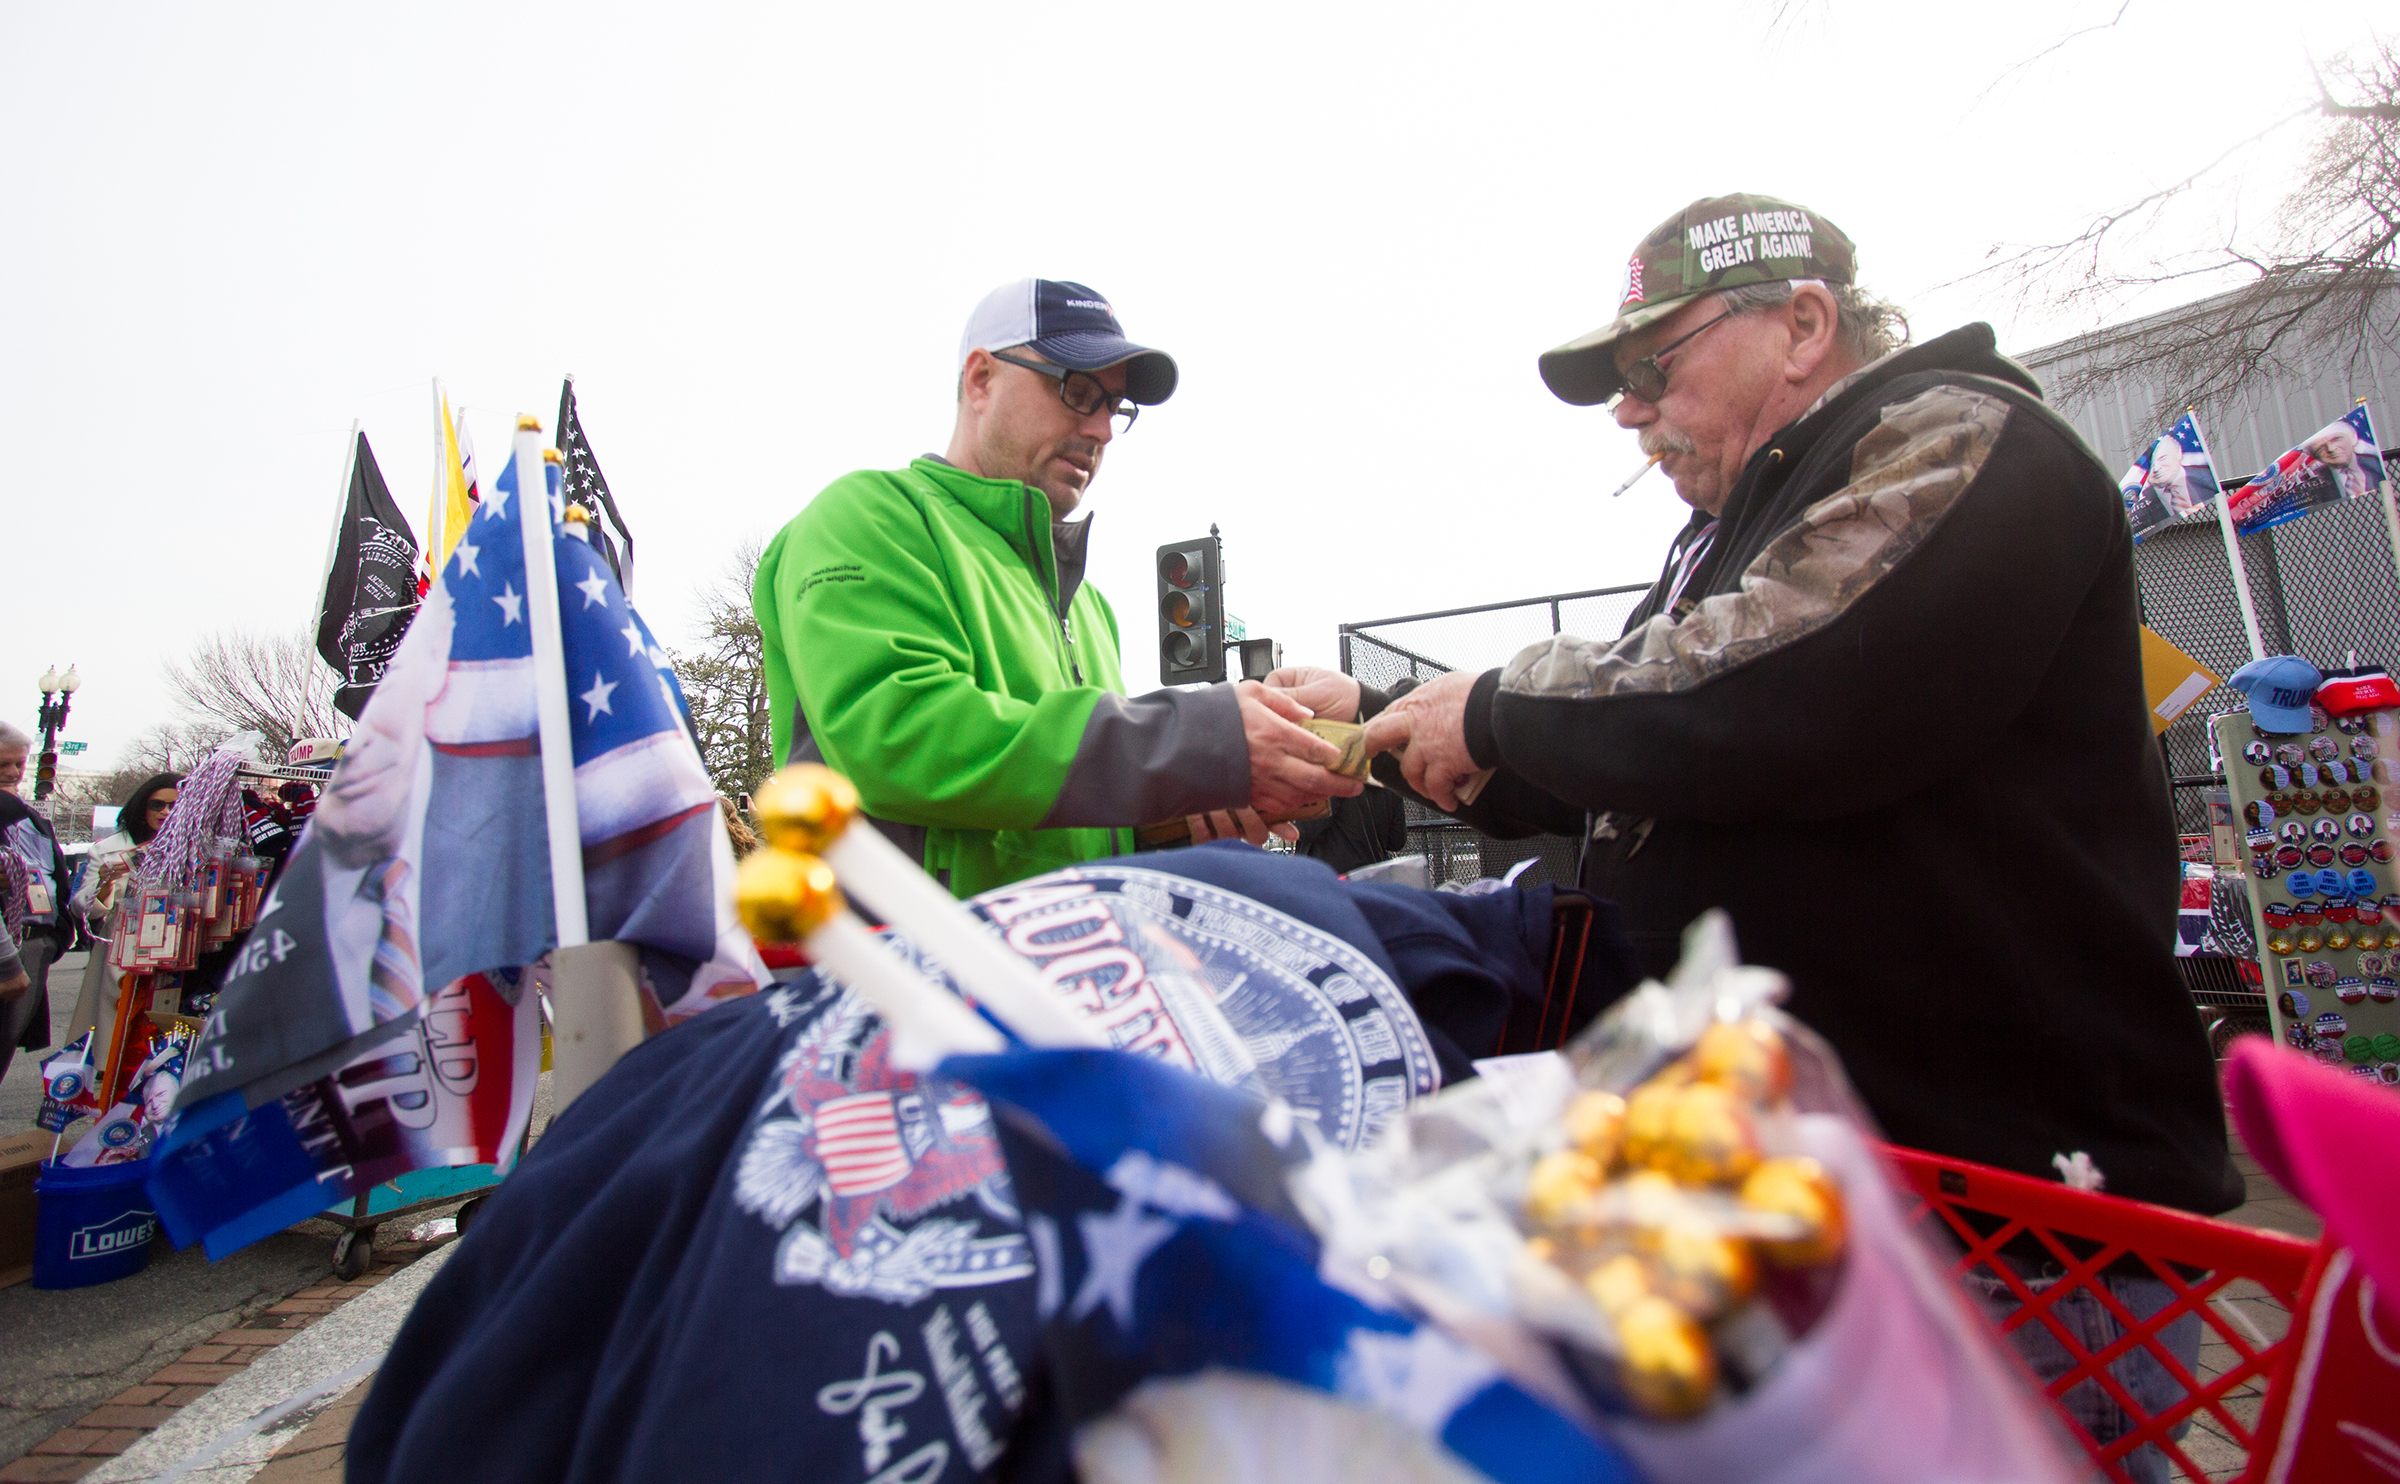 Billy Sewel (left), from New Mexico, buys a Trump baseball cap from Frank Maloney the day before the 2017 Presidential Inauguration, on January 19, 2017. Maloney came to Washington D.C. from Ohio to sell Trump merchandise to inauguration attendees. On Jan. 21, 2017, he would be selling paraphernalia at the 2017 Women's March.